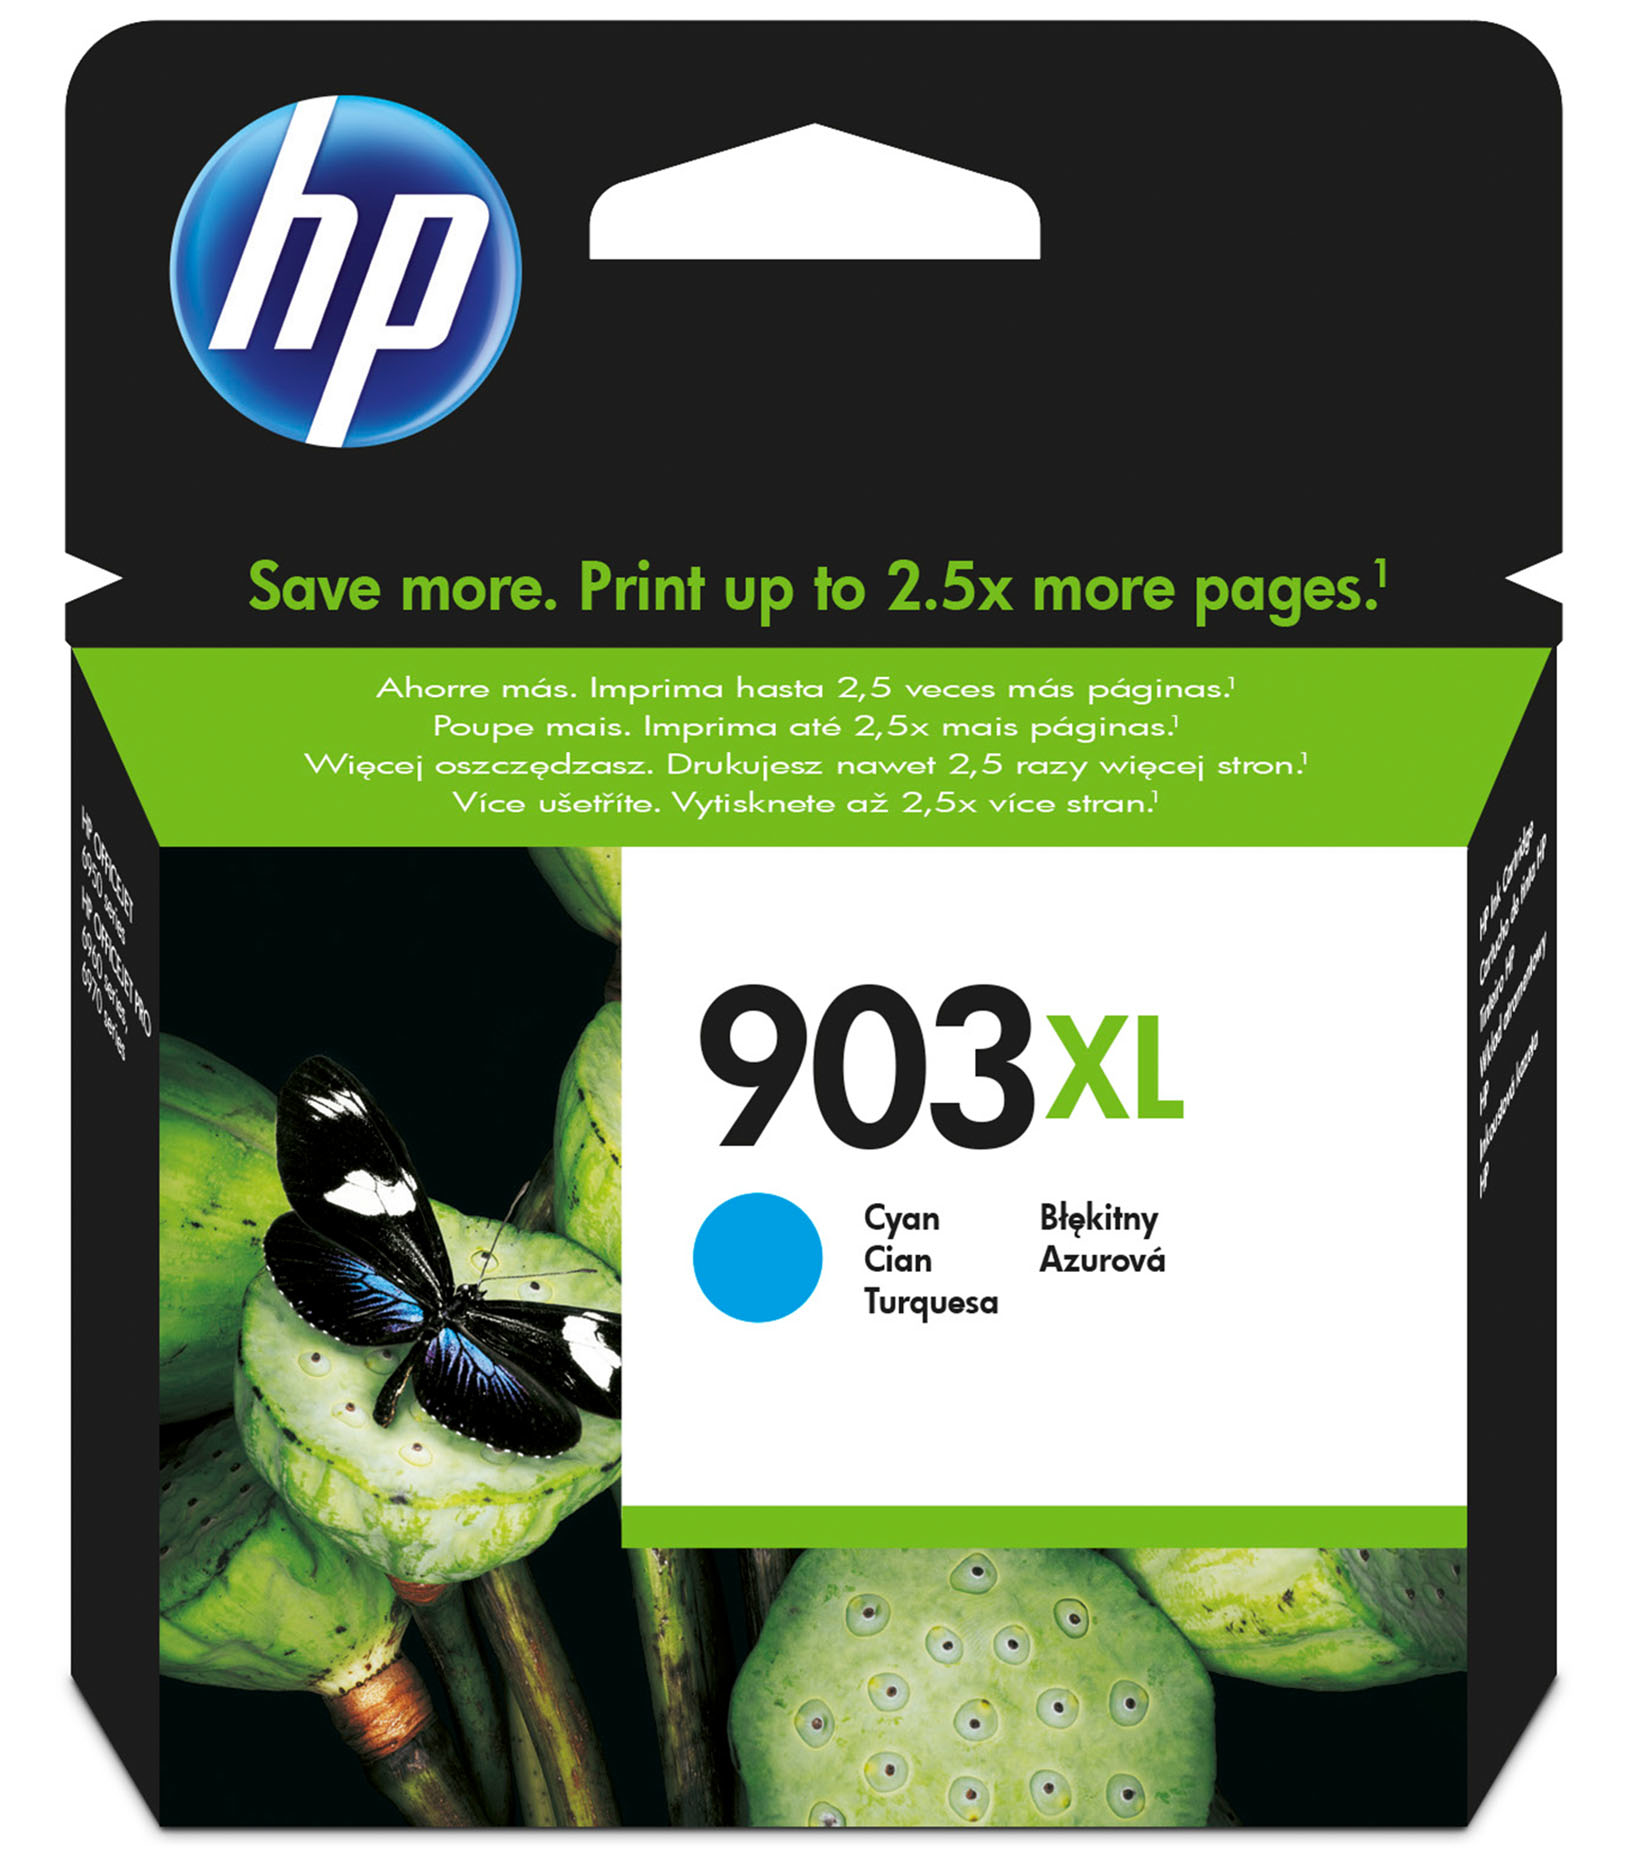 Hpt6m03ae      Hp 903xl Cyan Ink Cartridge    High Yield                                                   - UF01